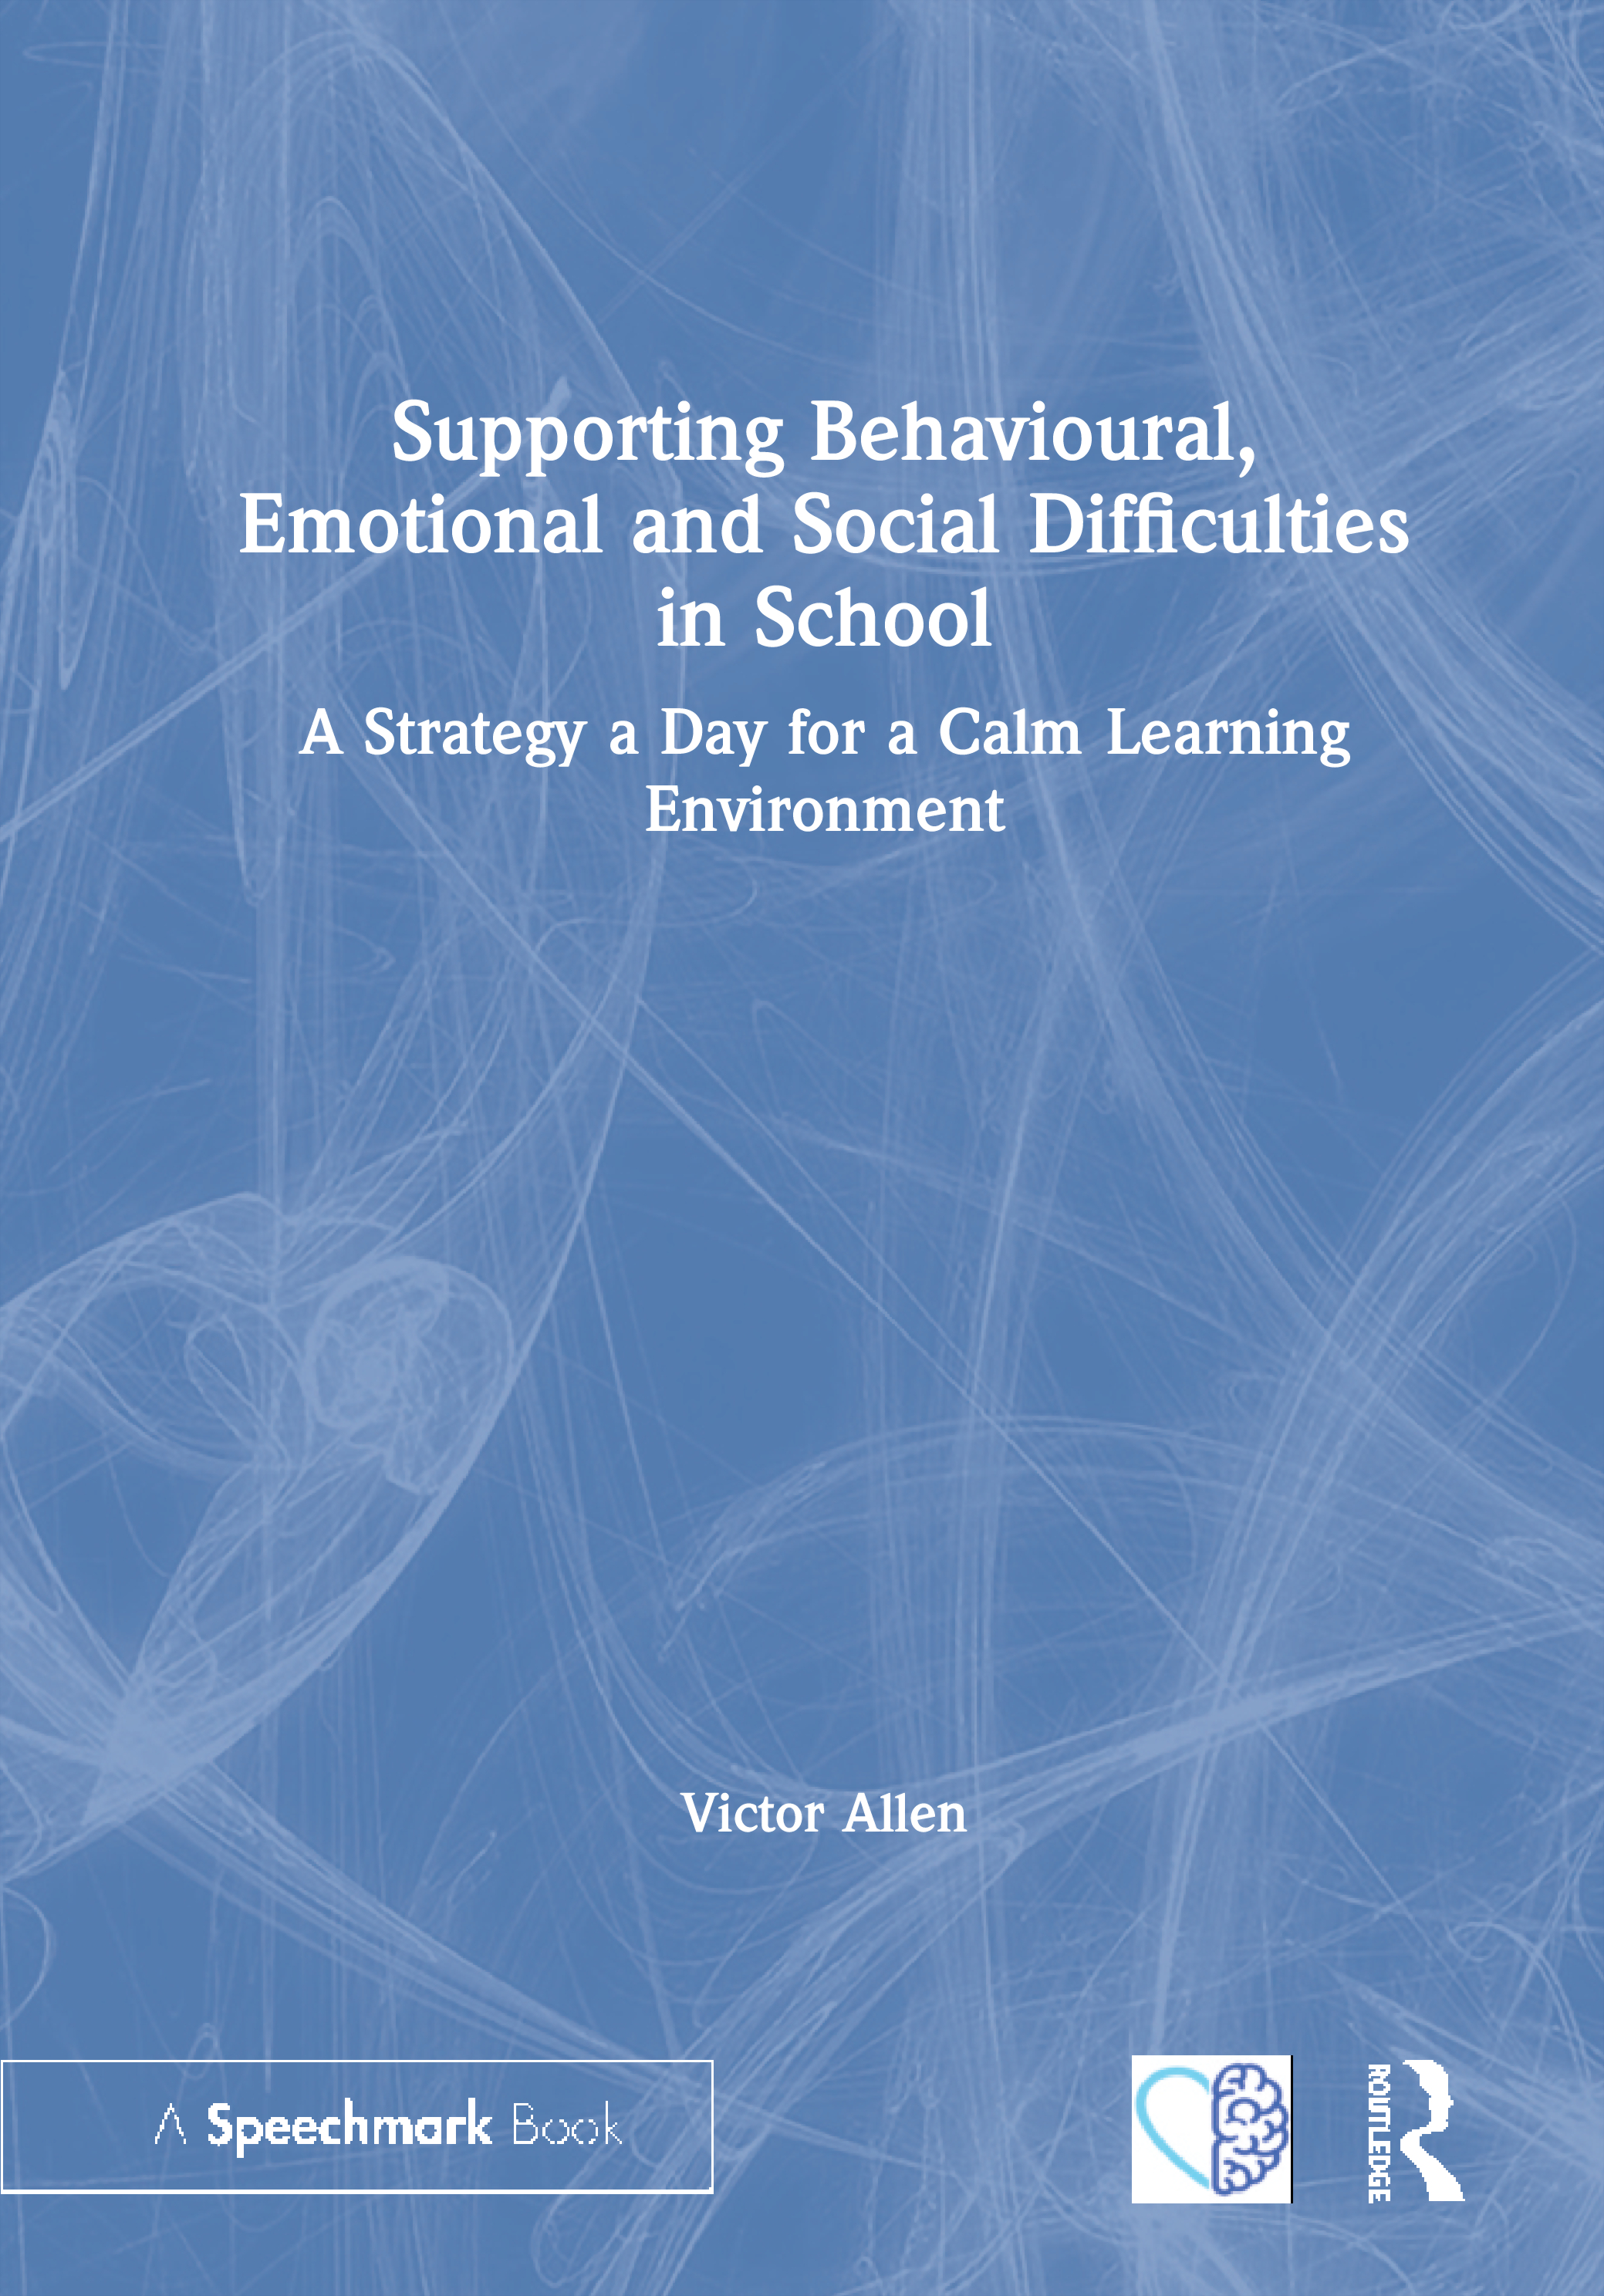 Supporting Behavioural, Emotional and Social Difficulties in School: A Strategy a Day for a Calm Learning Environment book cover